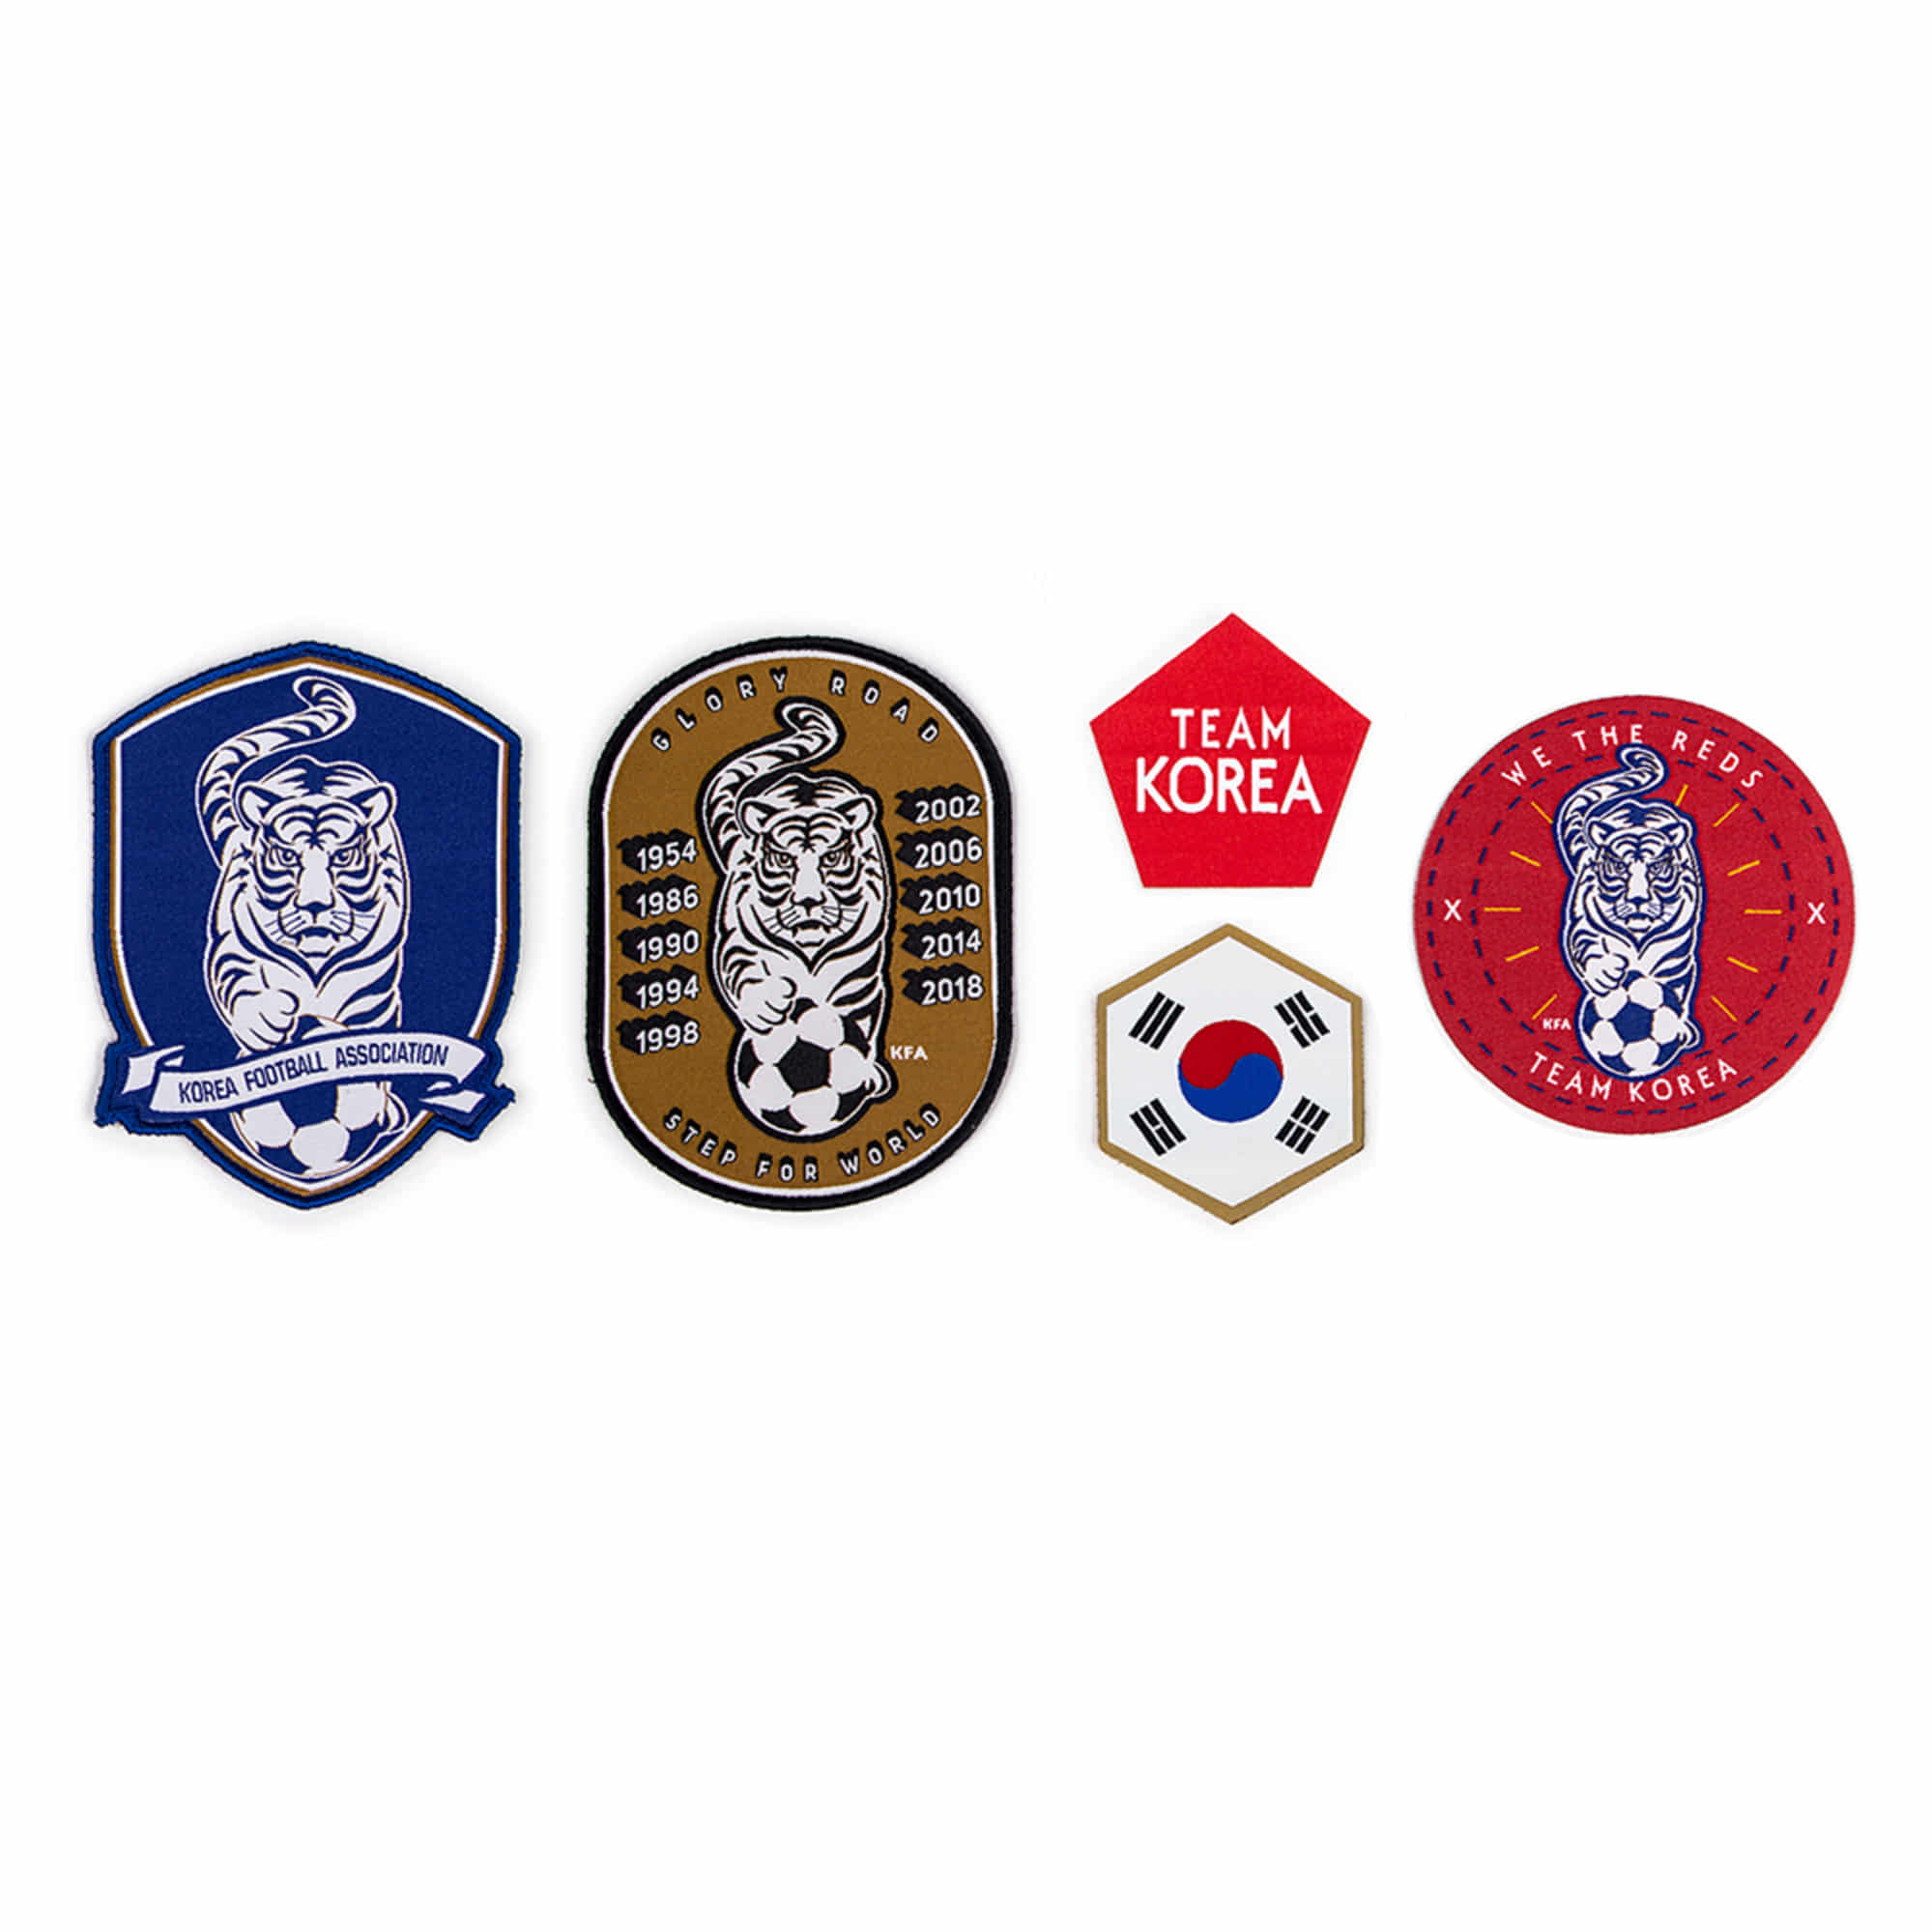 KFA PATCH SET 2018